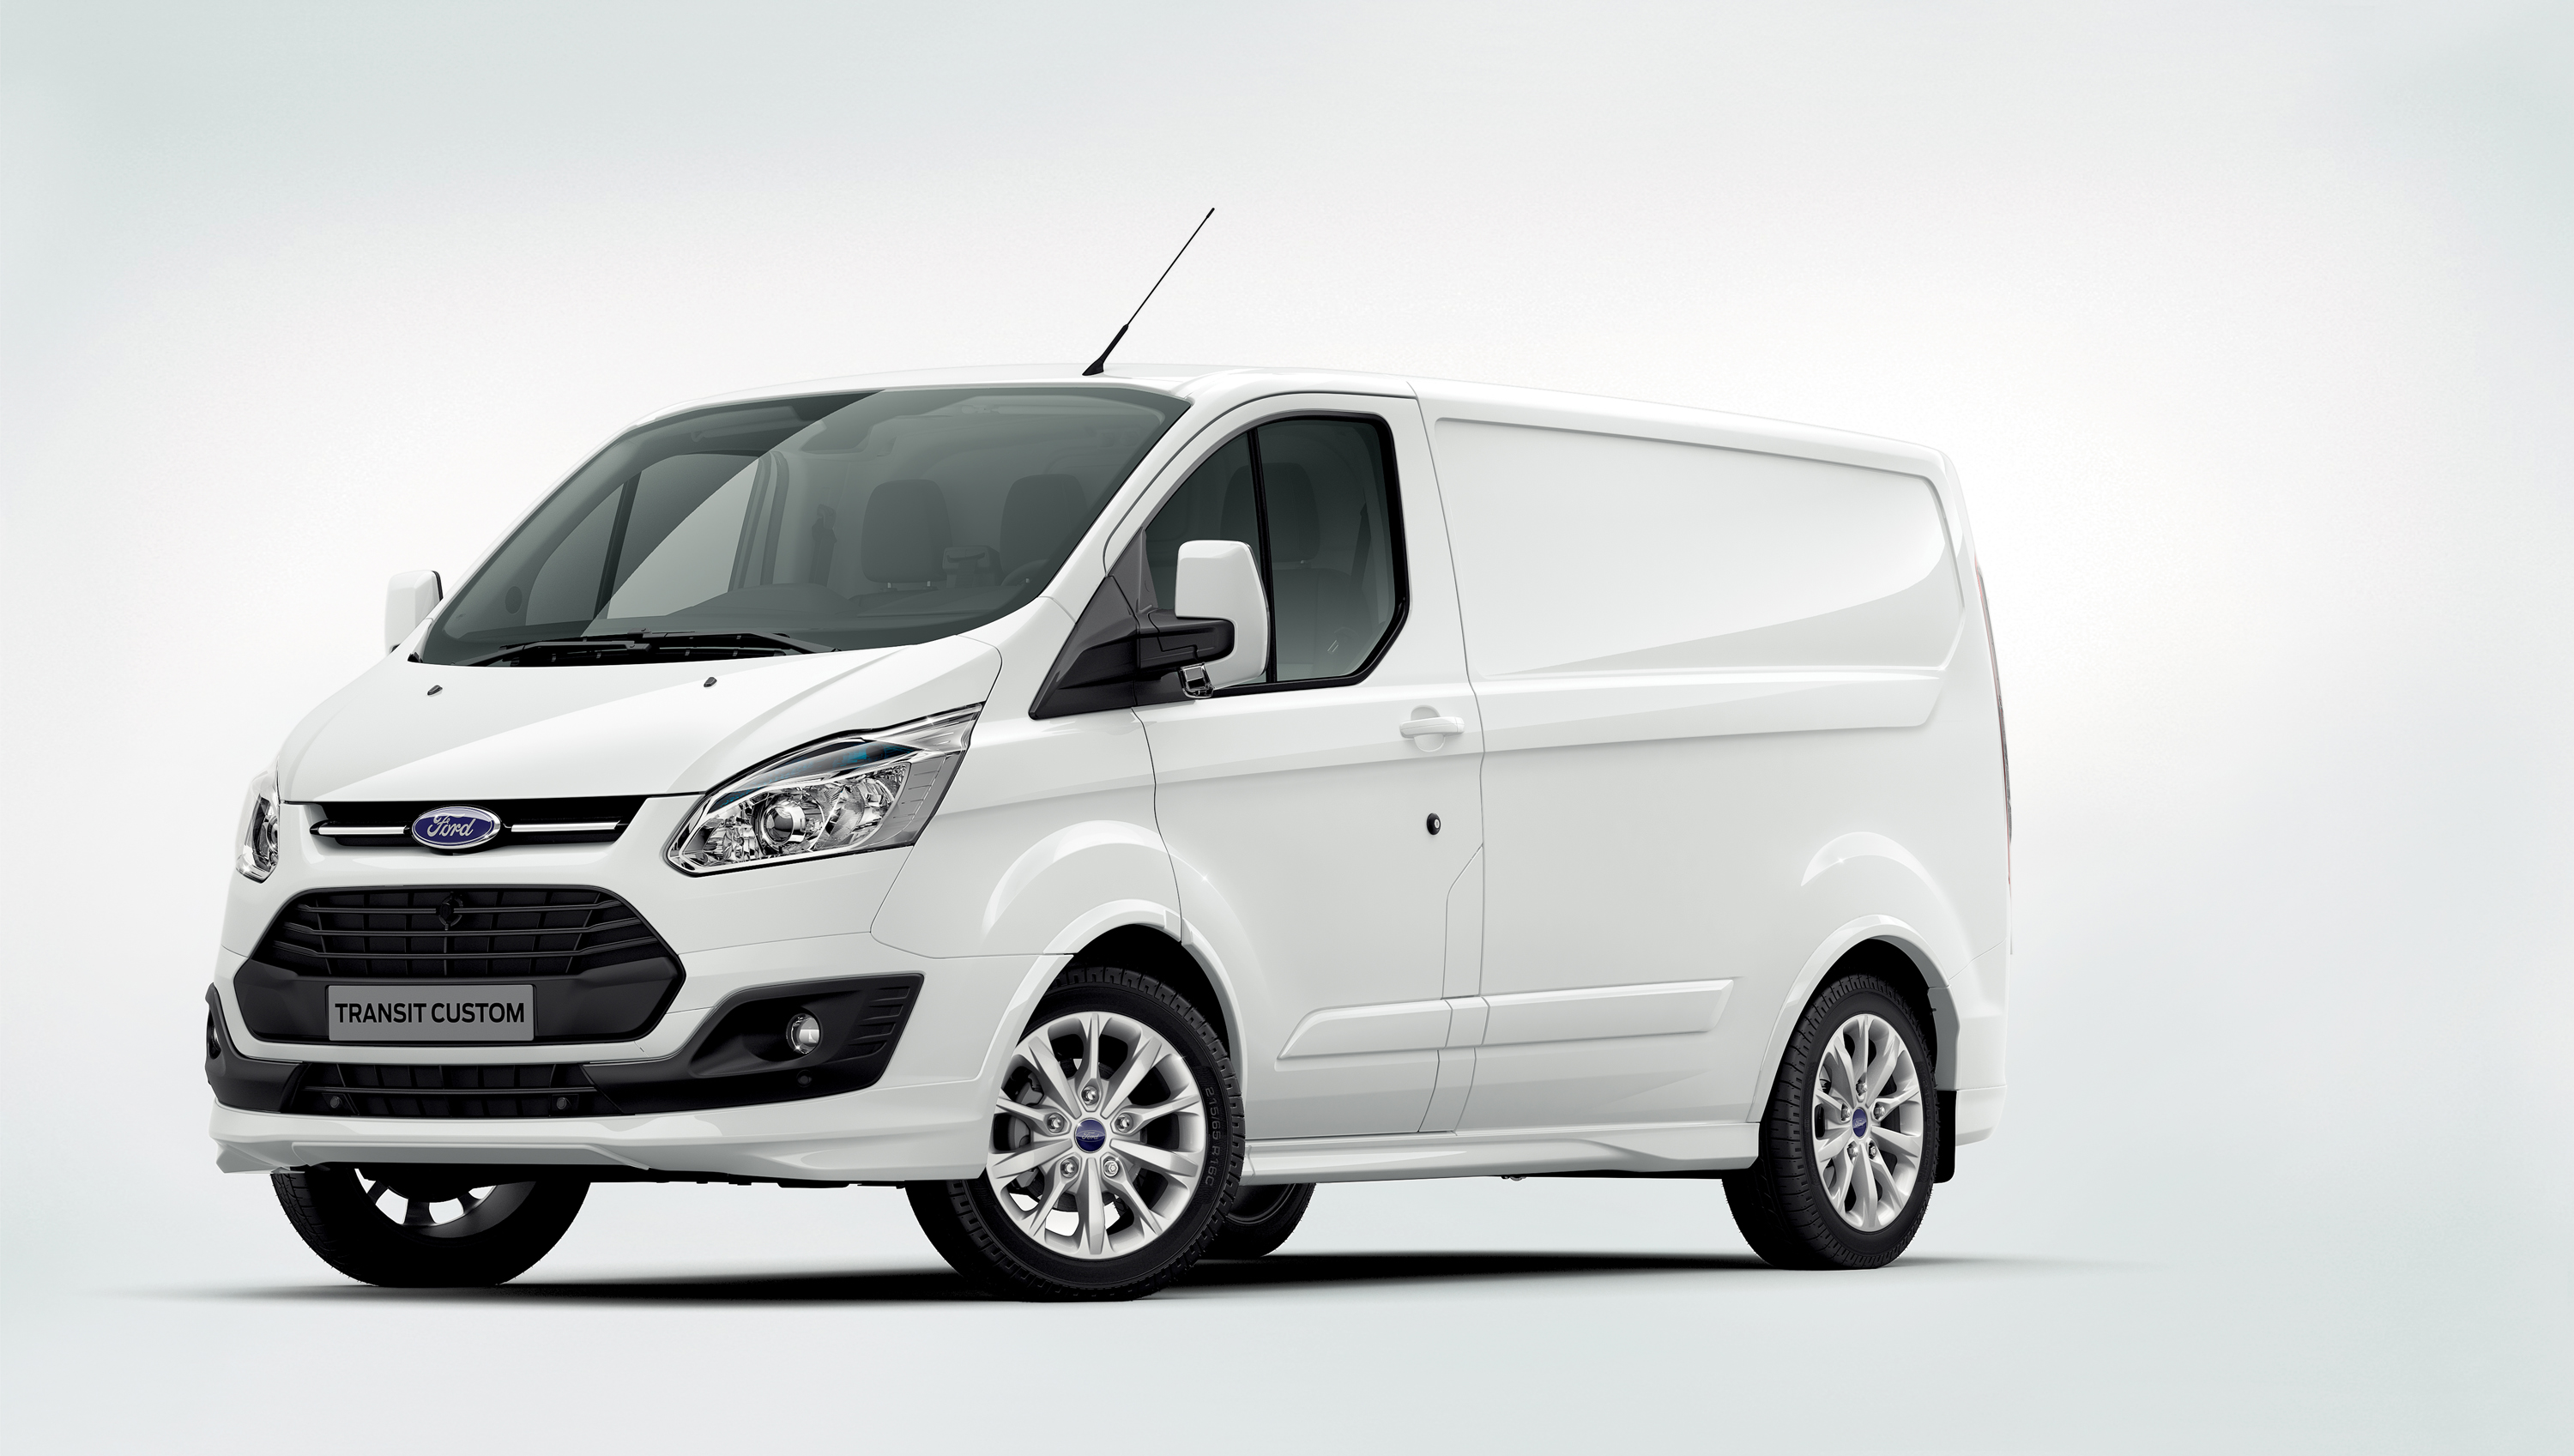 Ford Transit Custom History Photos On Better Parts LTD